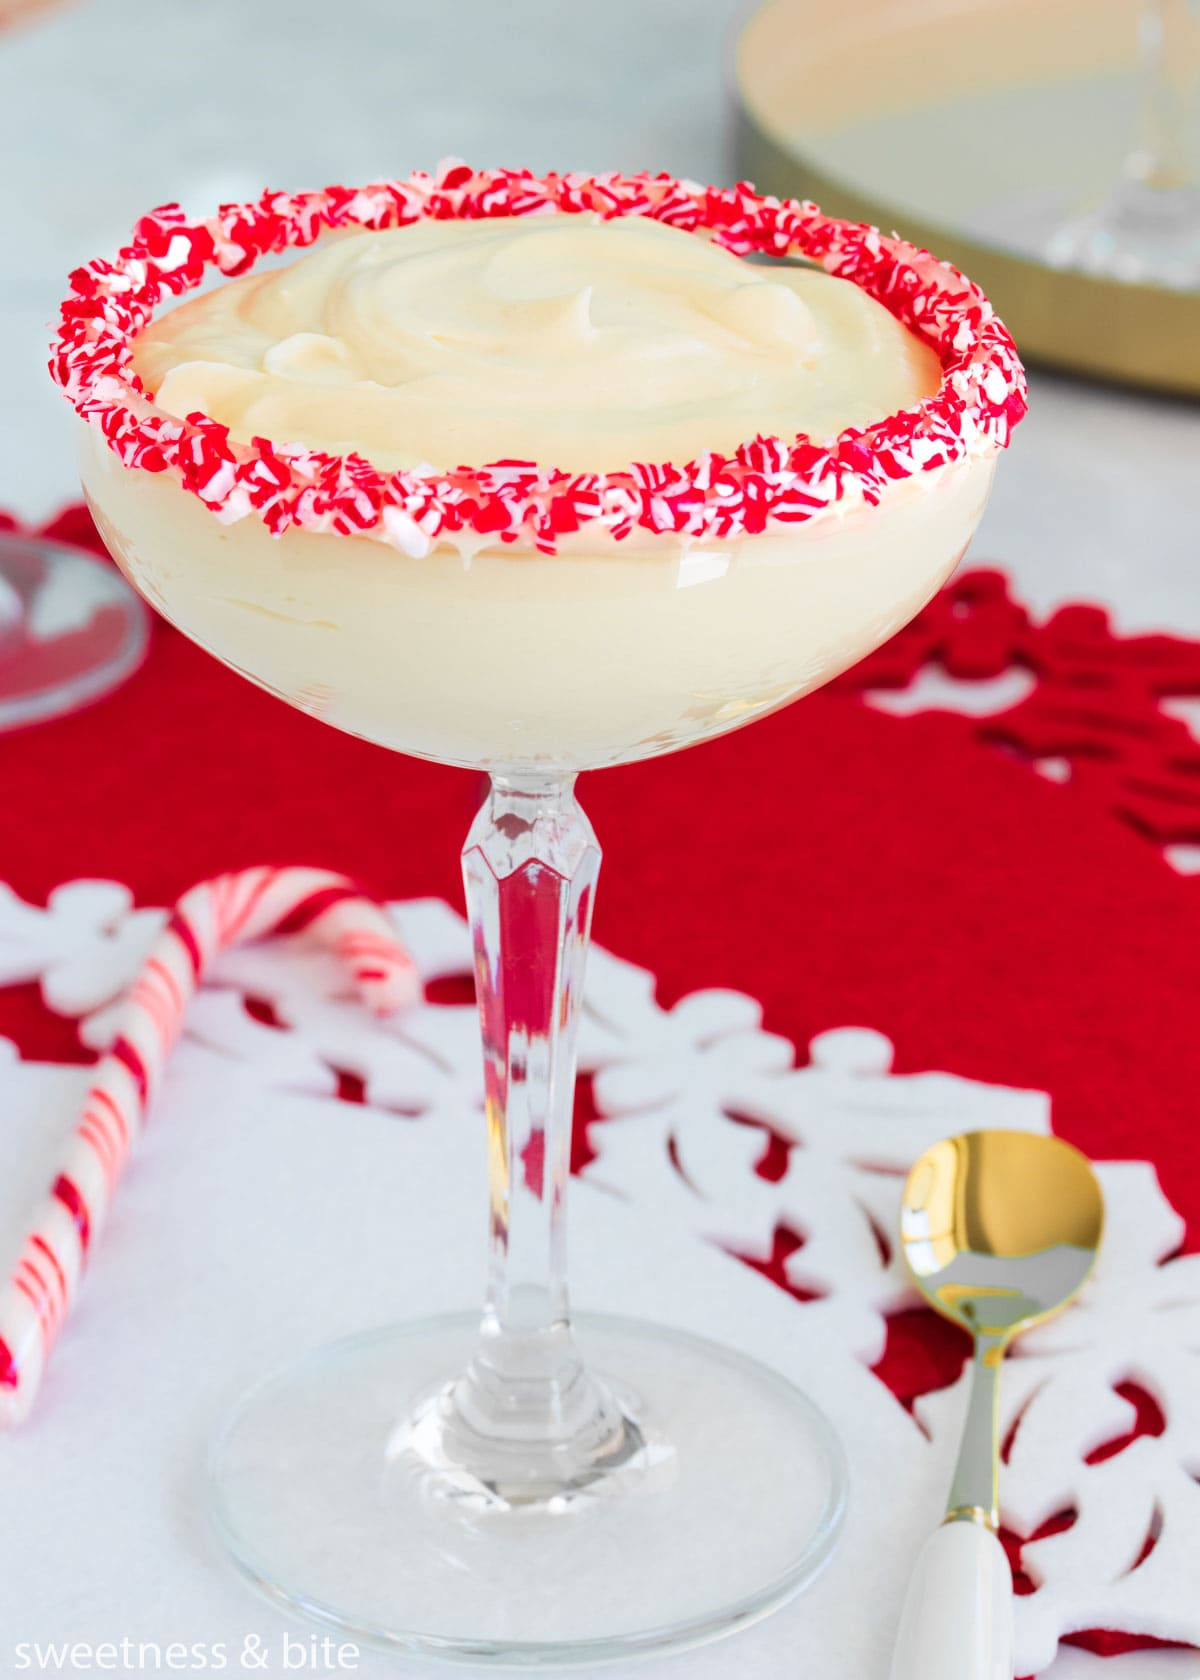 White chocolate peppermint mousse in a stemmed cocktail glass with crushed candy canes around the rim.